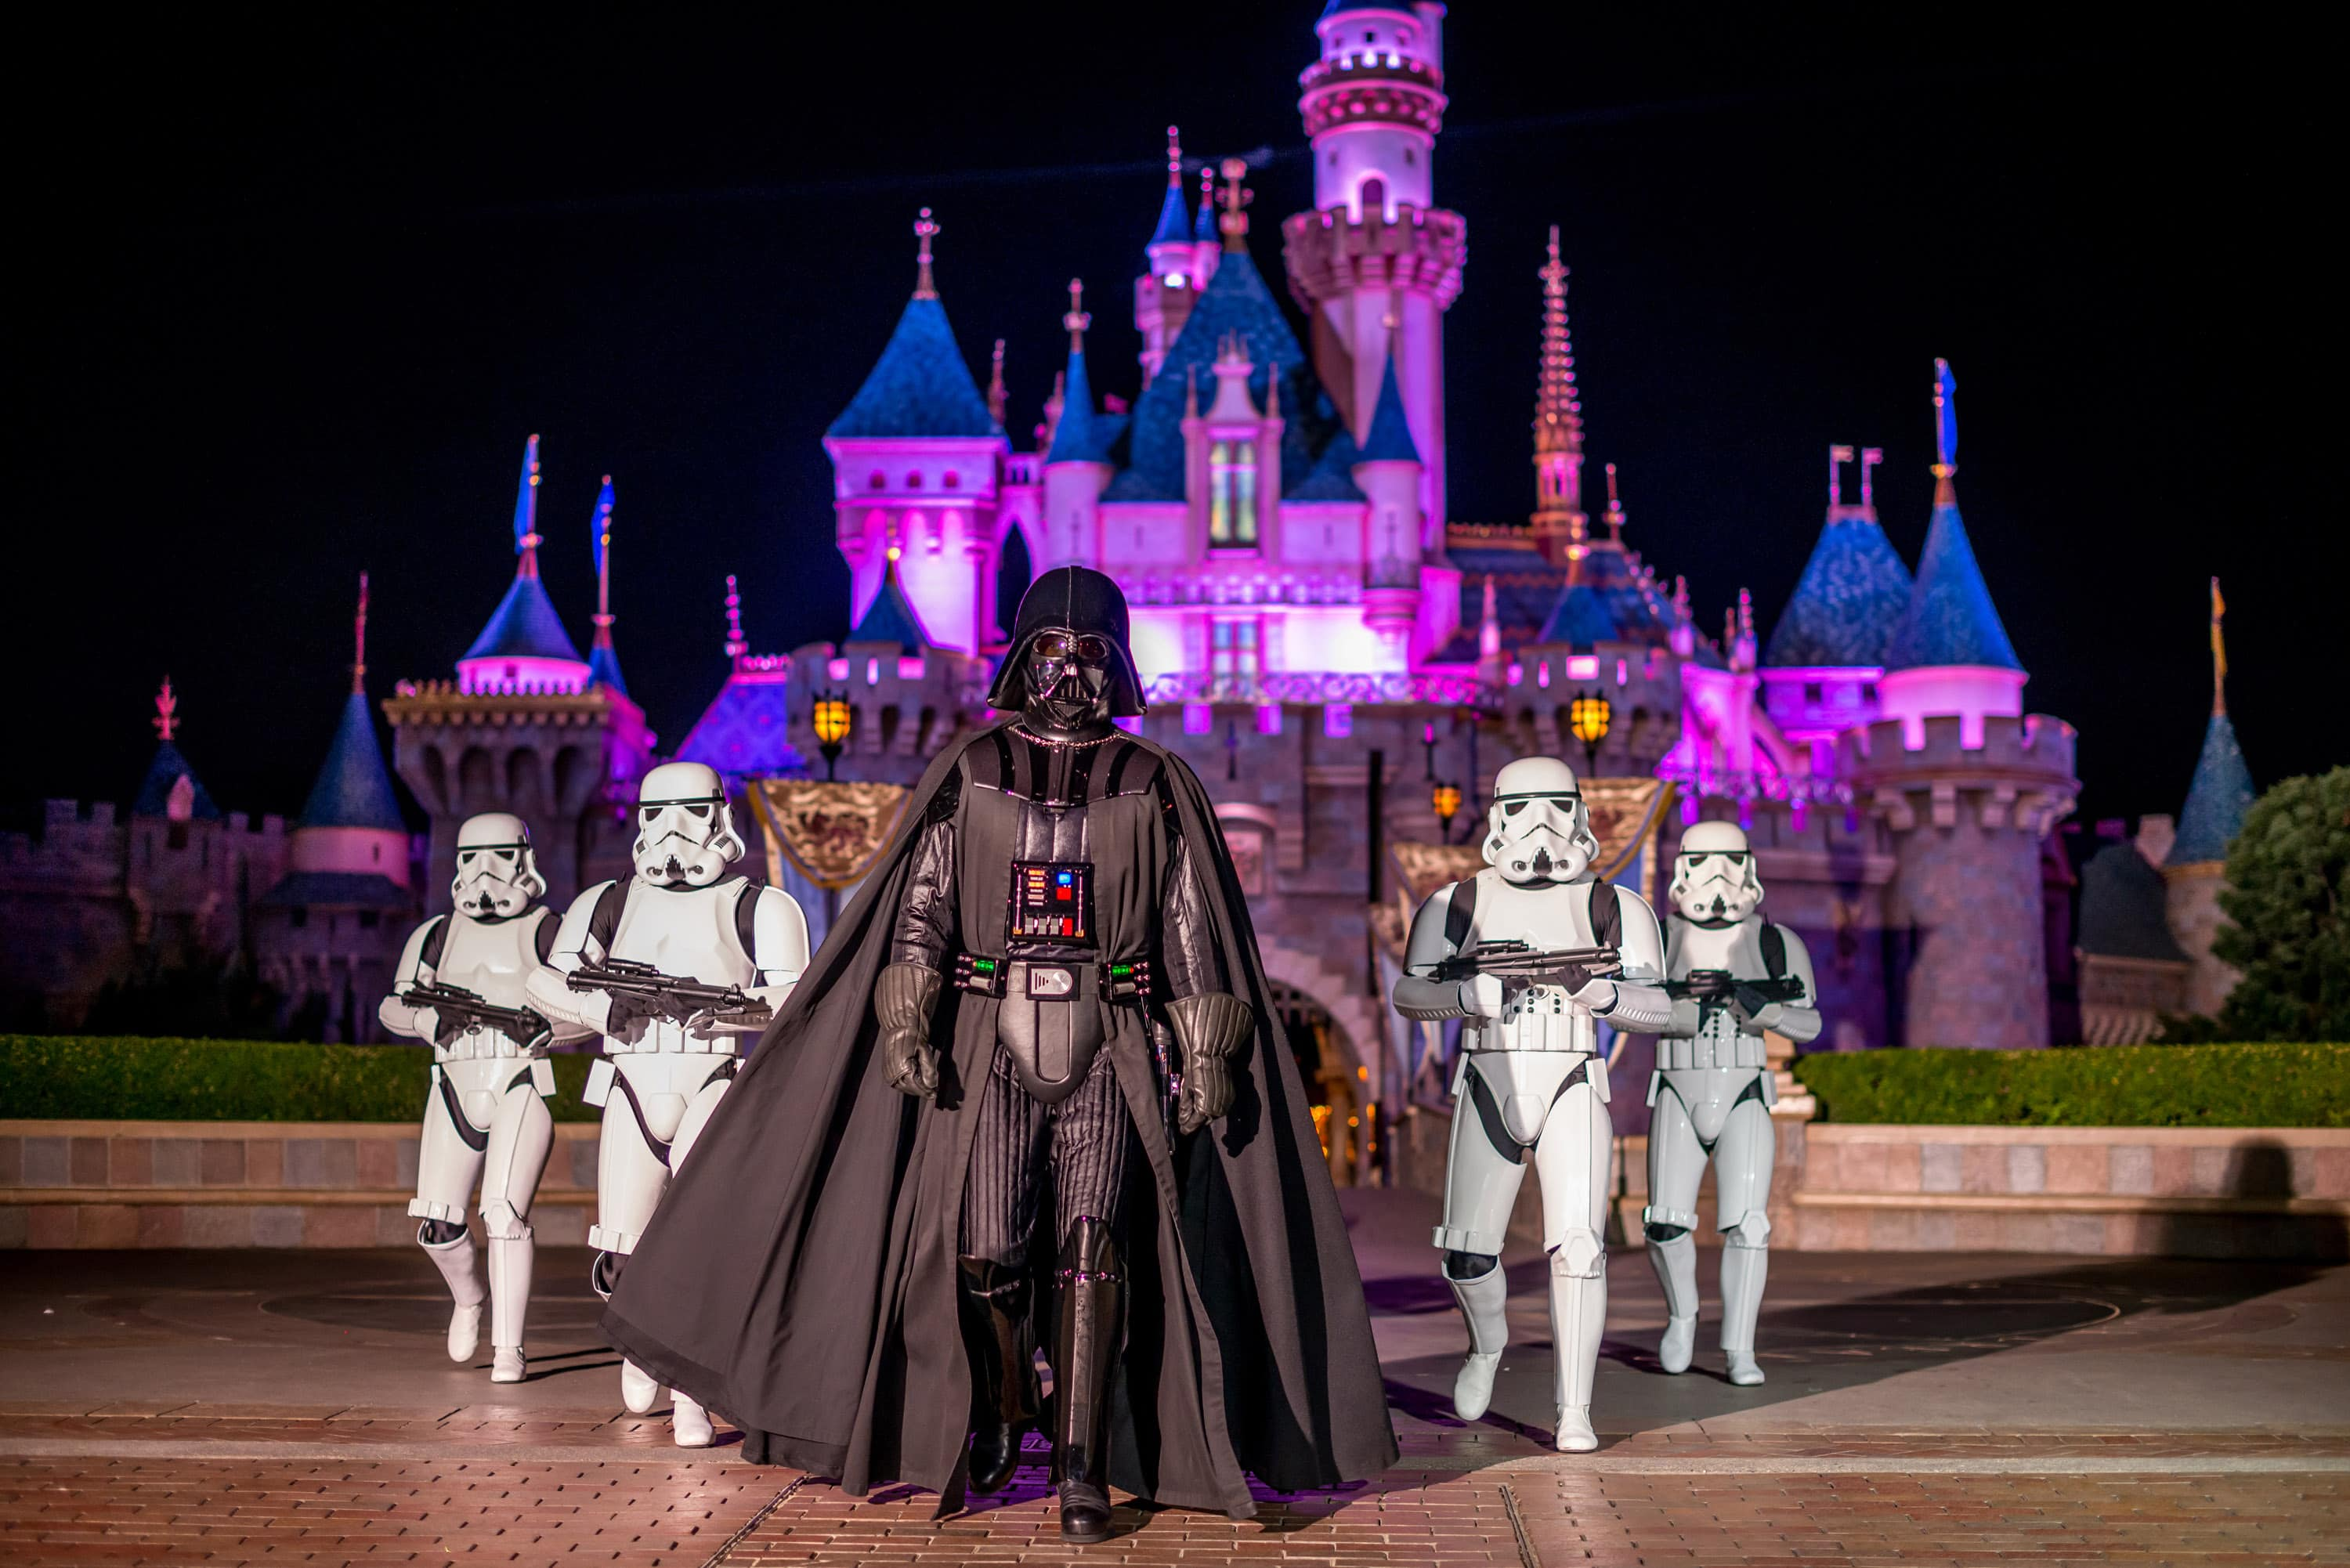 Star Wars Half Marathon Weekend Makes Its Intergalactic Arrival at Disneyland Resort in 2015